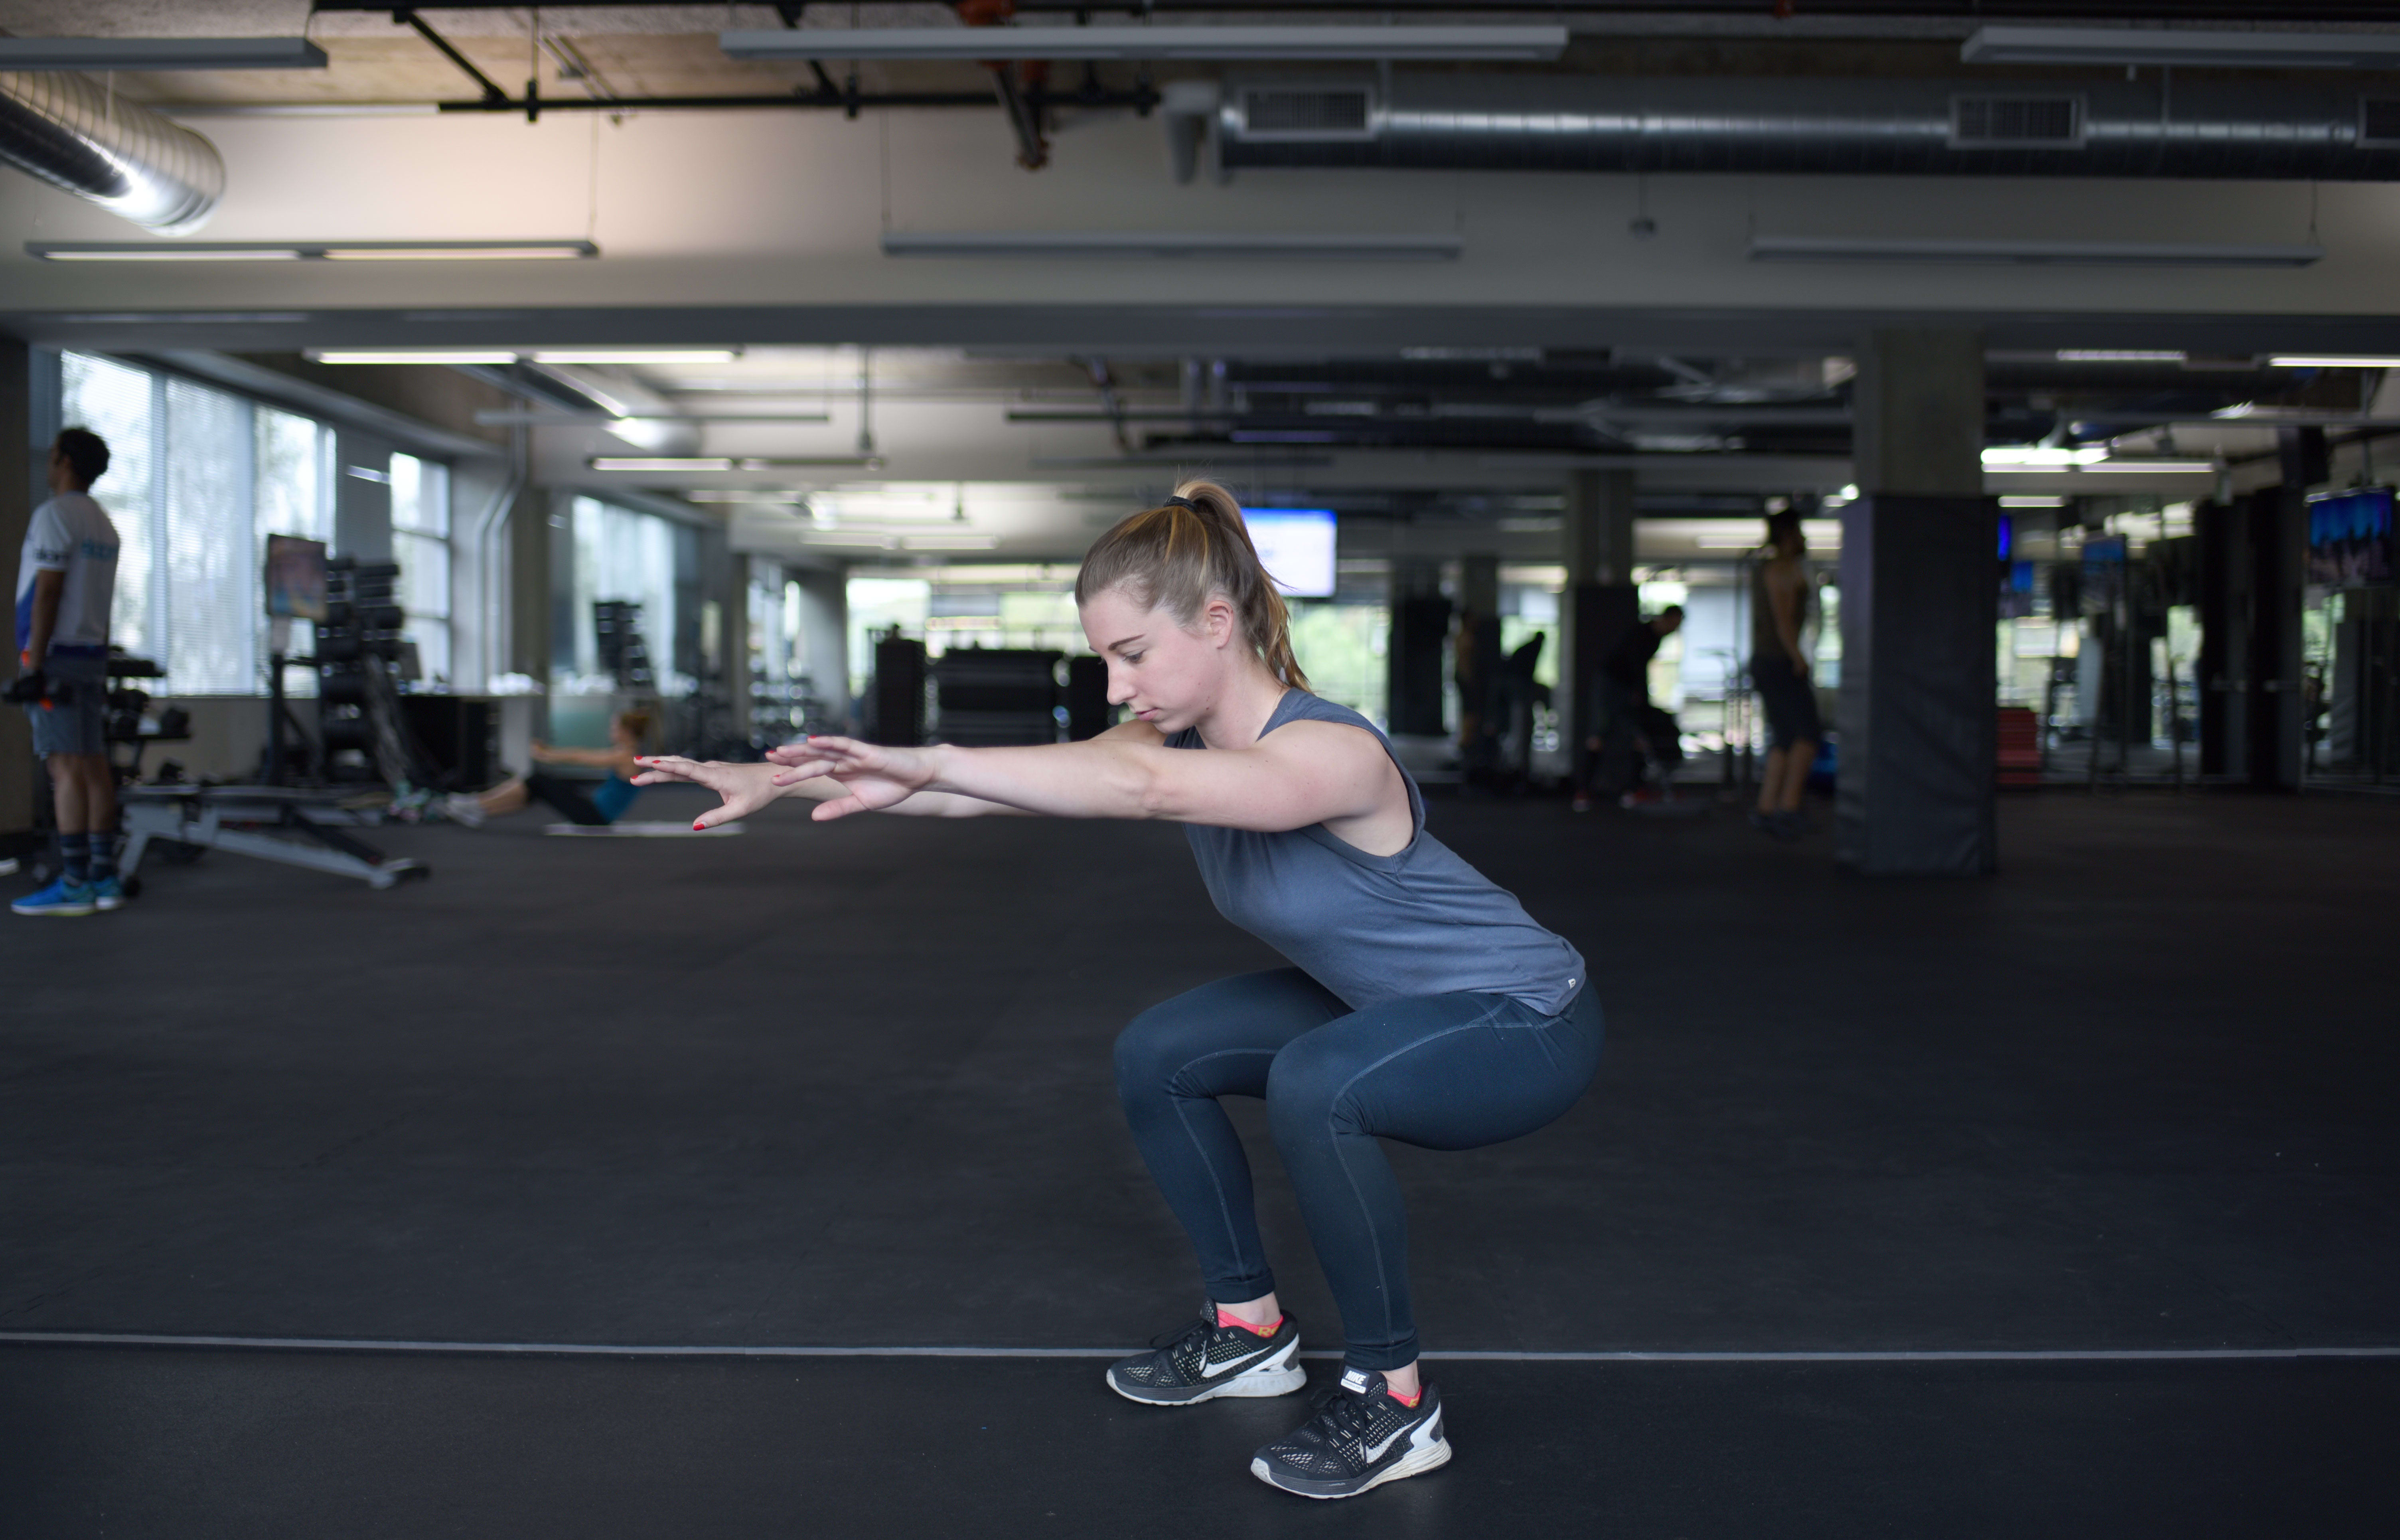 4 of the Best Butt Exercises to Lift Your Butt - Squat